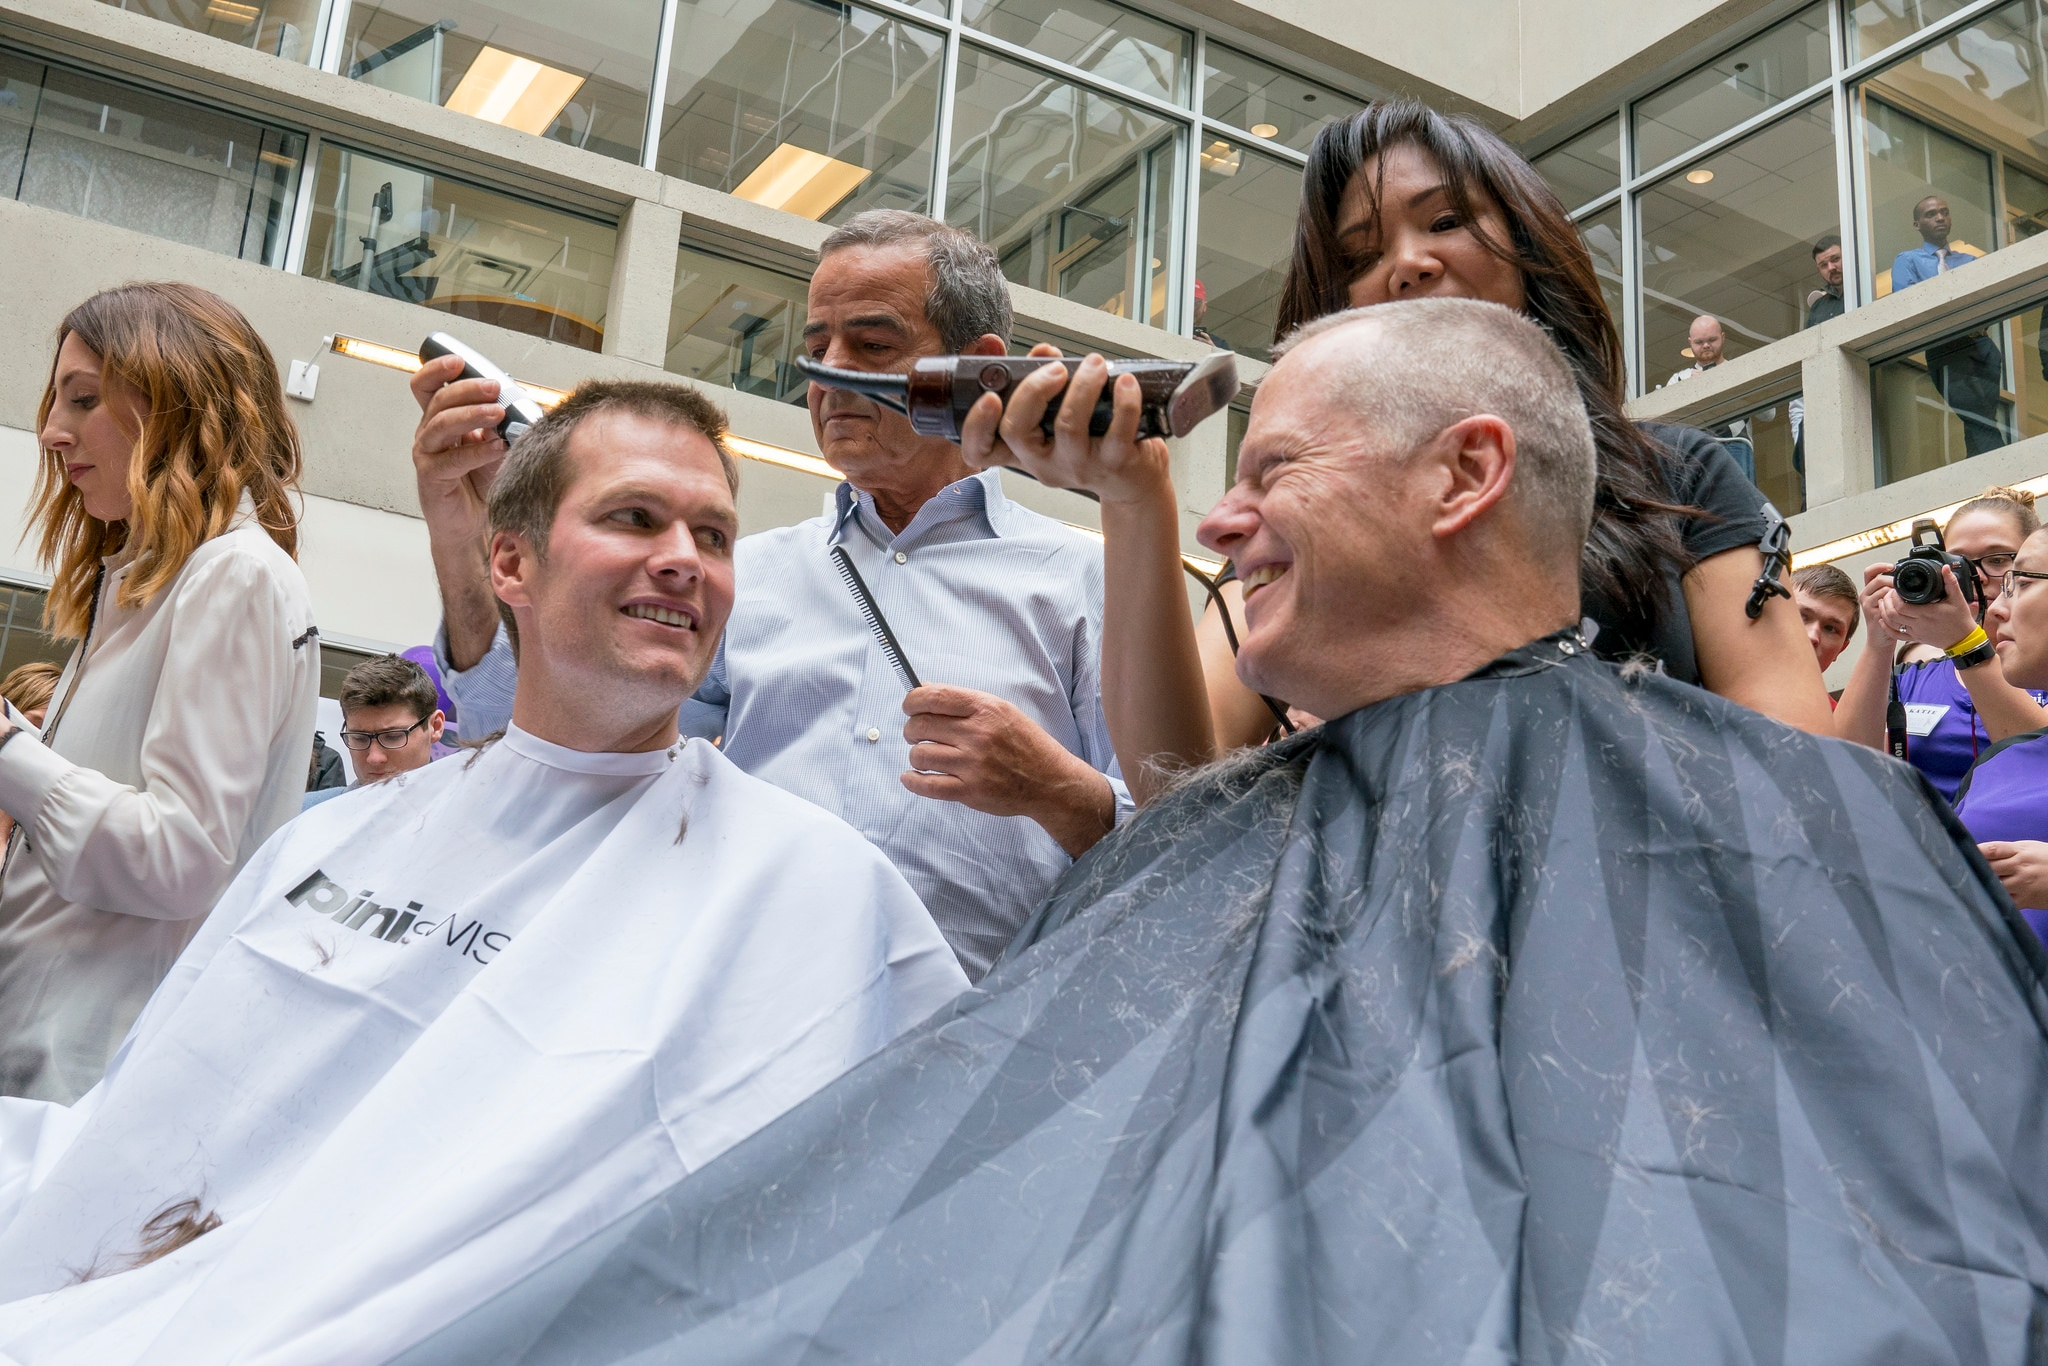 """Governor Baker and Tom Brady get buzz cuts during """"Saving by Shaving"""" event at Granite Telecom to benefit Dana-Farber."""